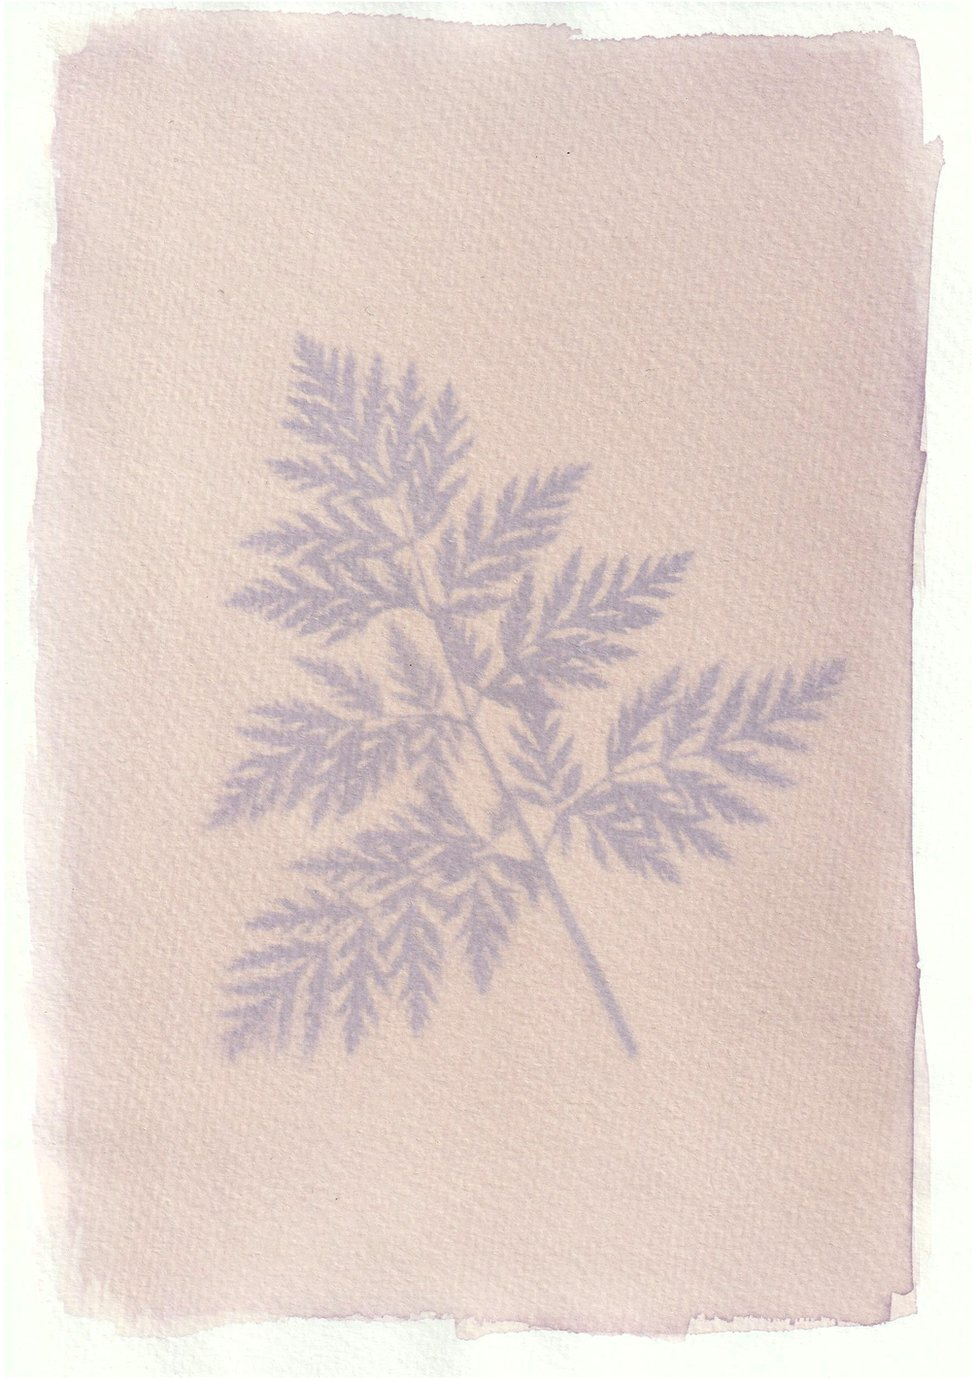 An anthotype print of a purple leaf